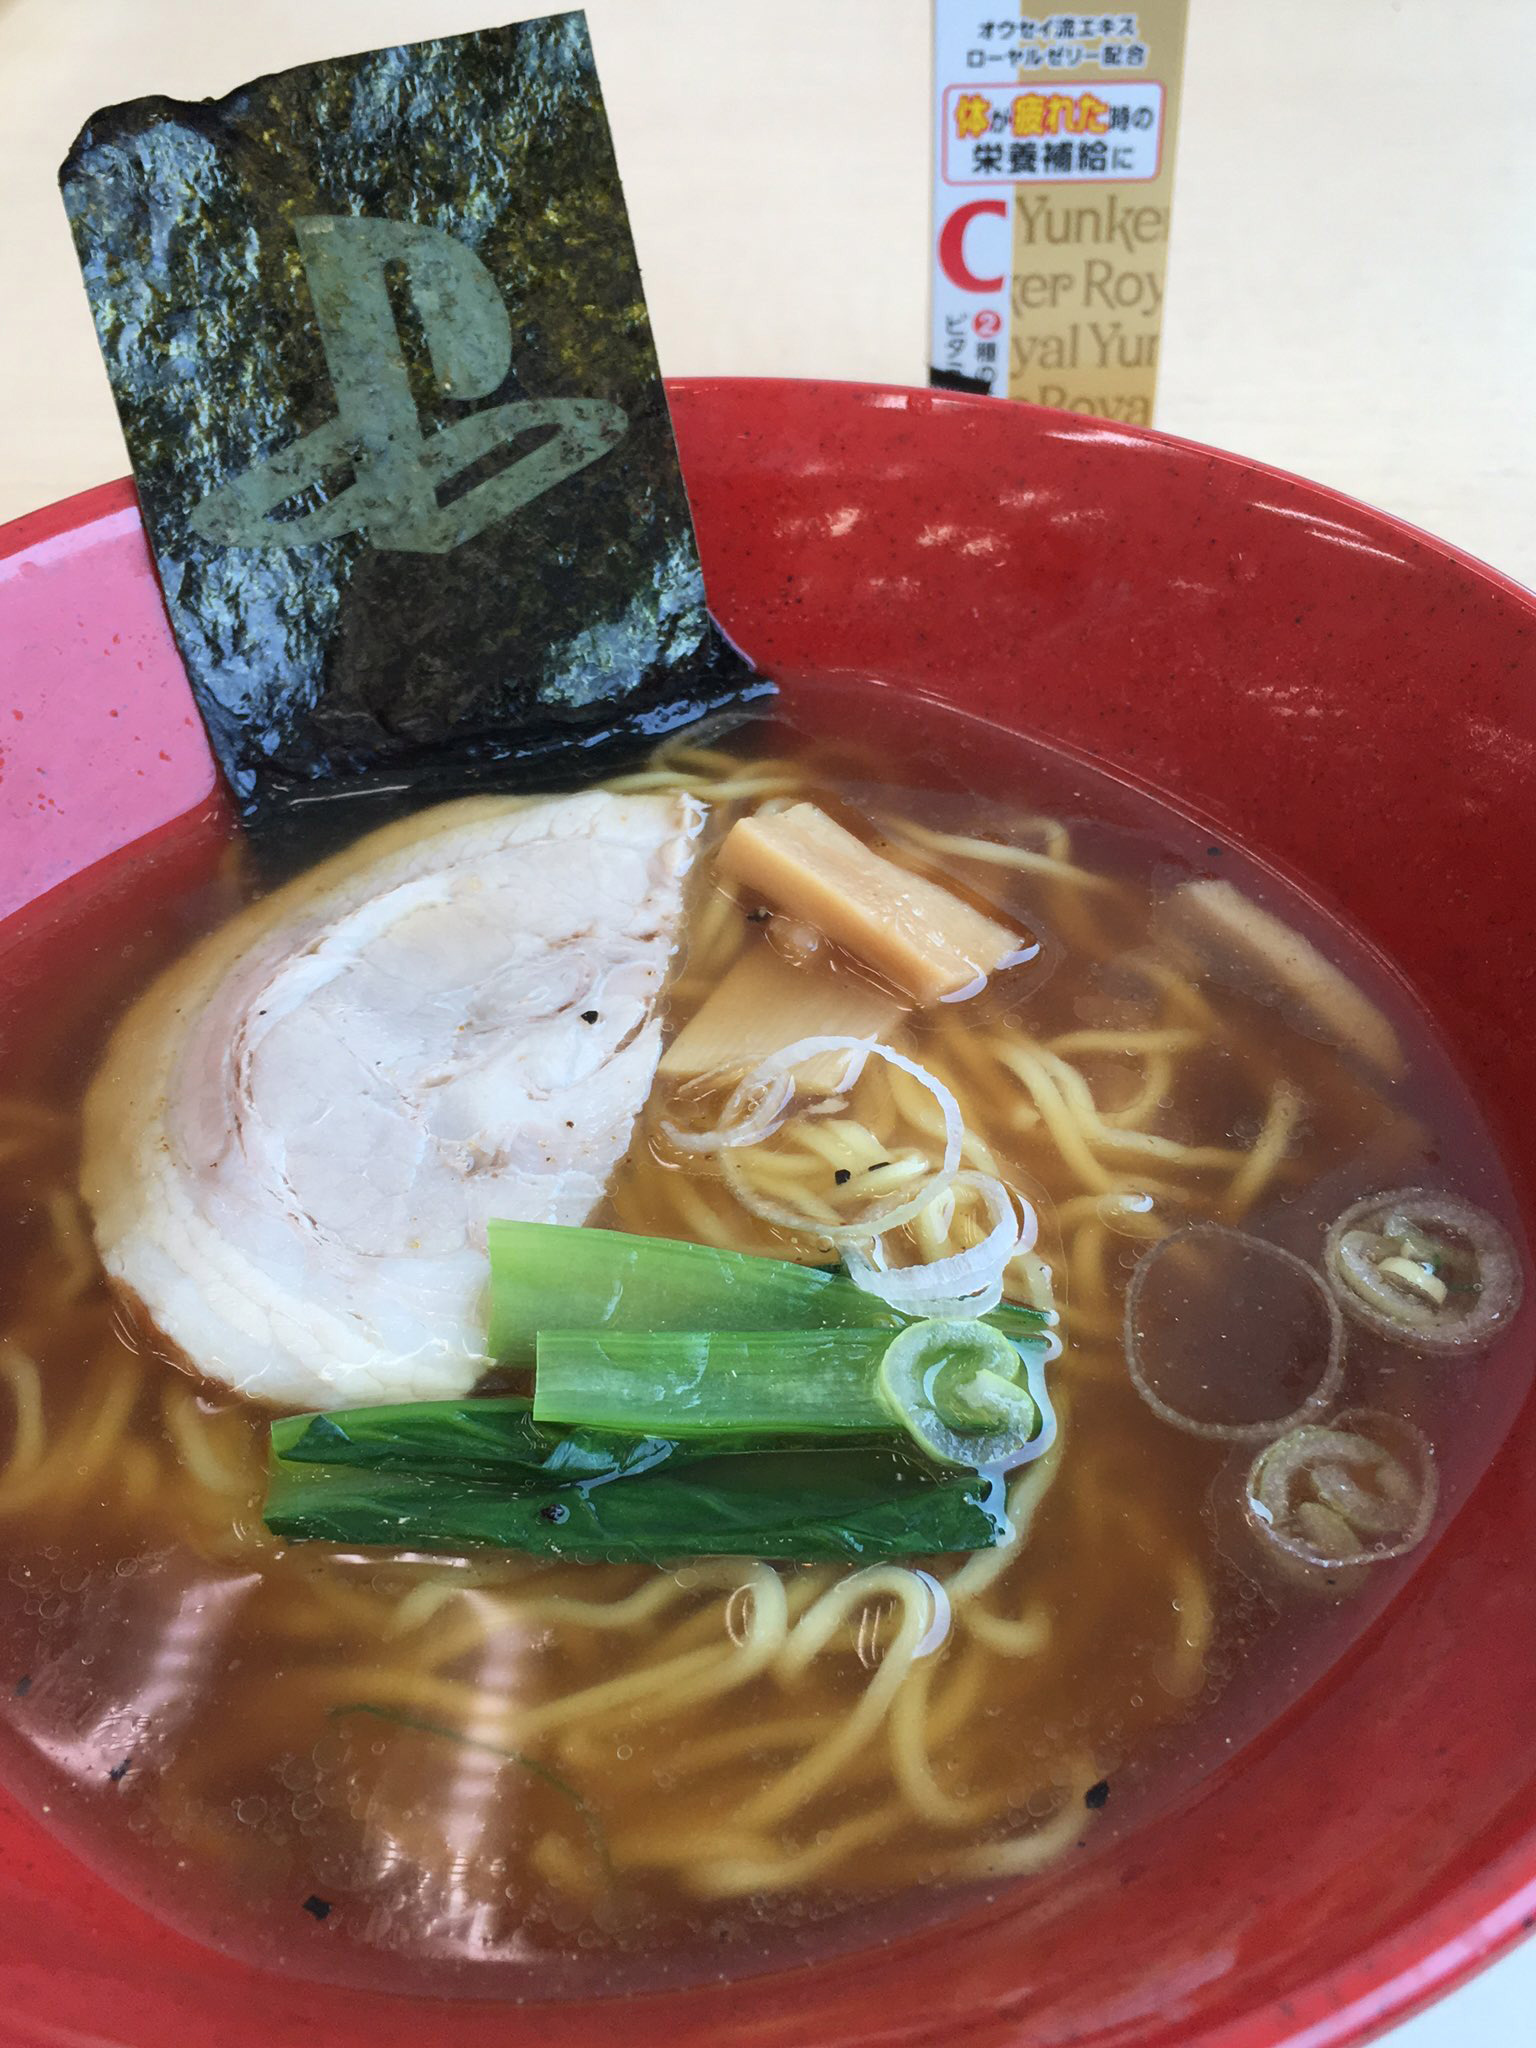 """Had PS PARK Ramen for lunch."" - Hideo Kojima"